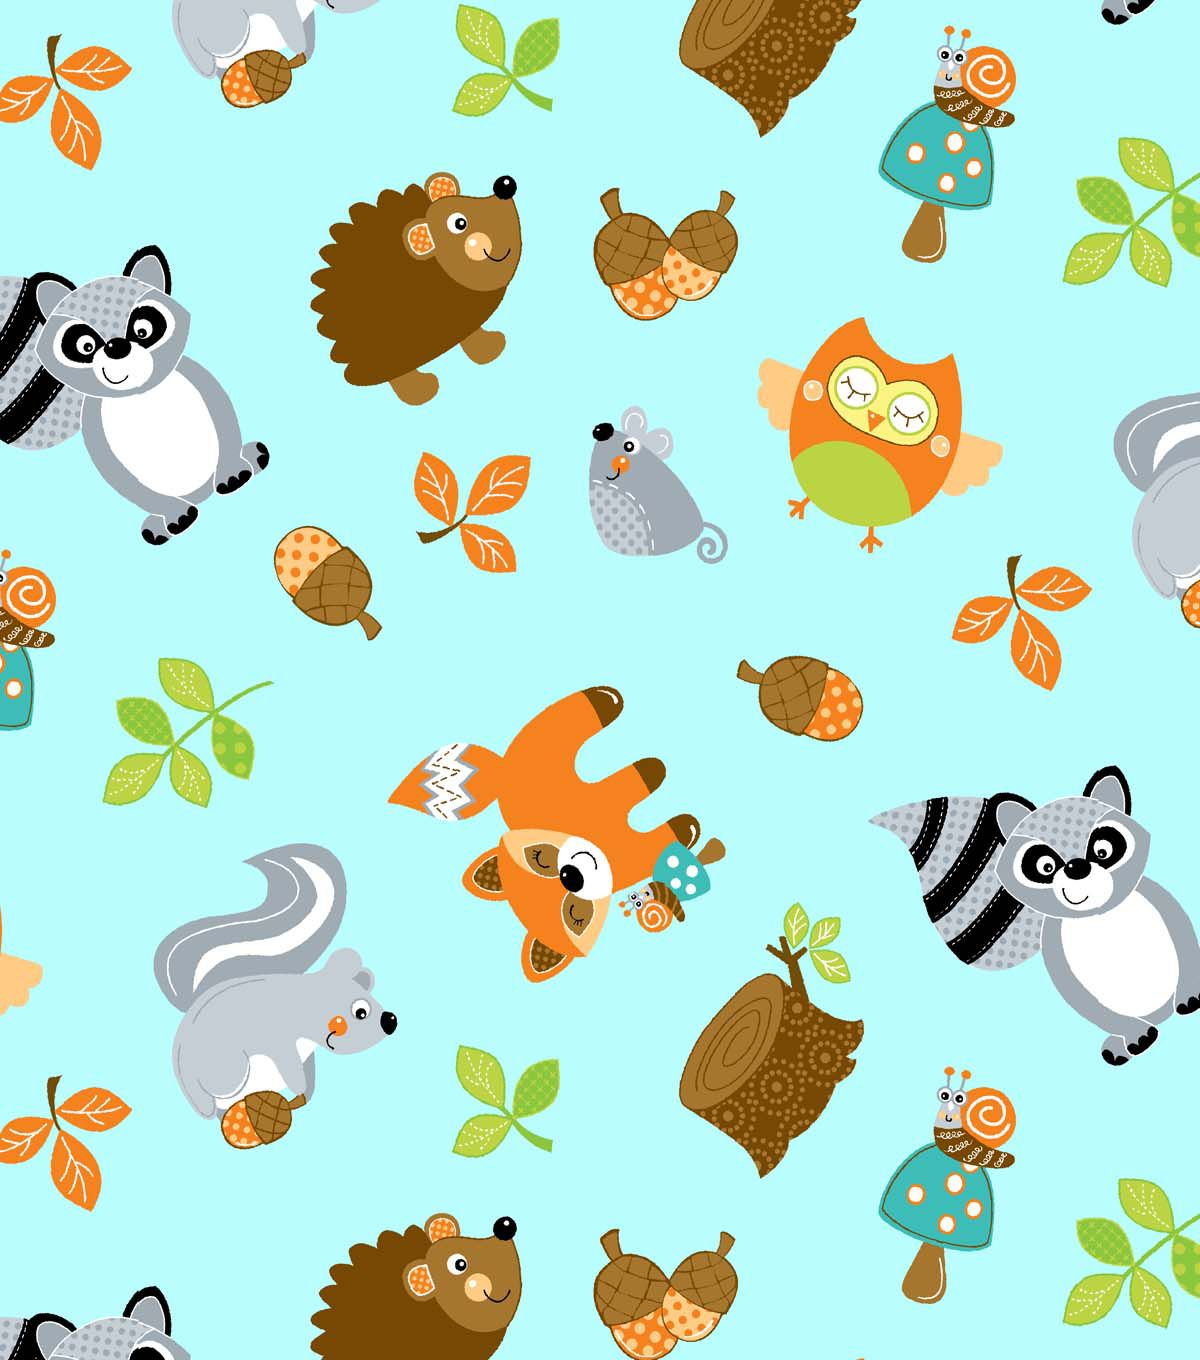 Nursery Fabric Woodland Friends Tossed Teal Teal Friends and